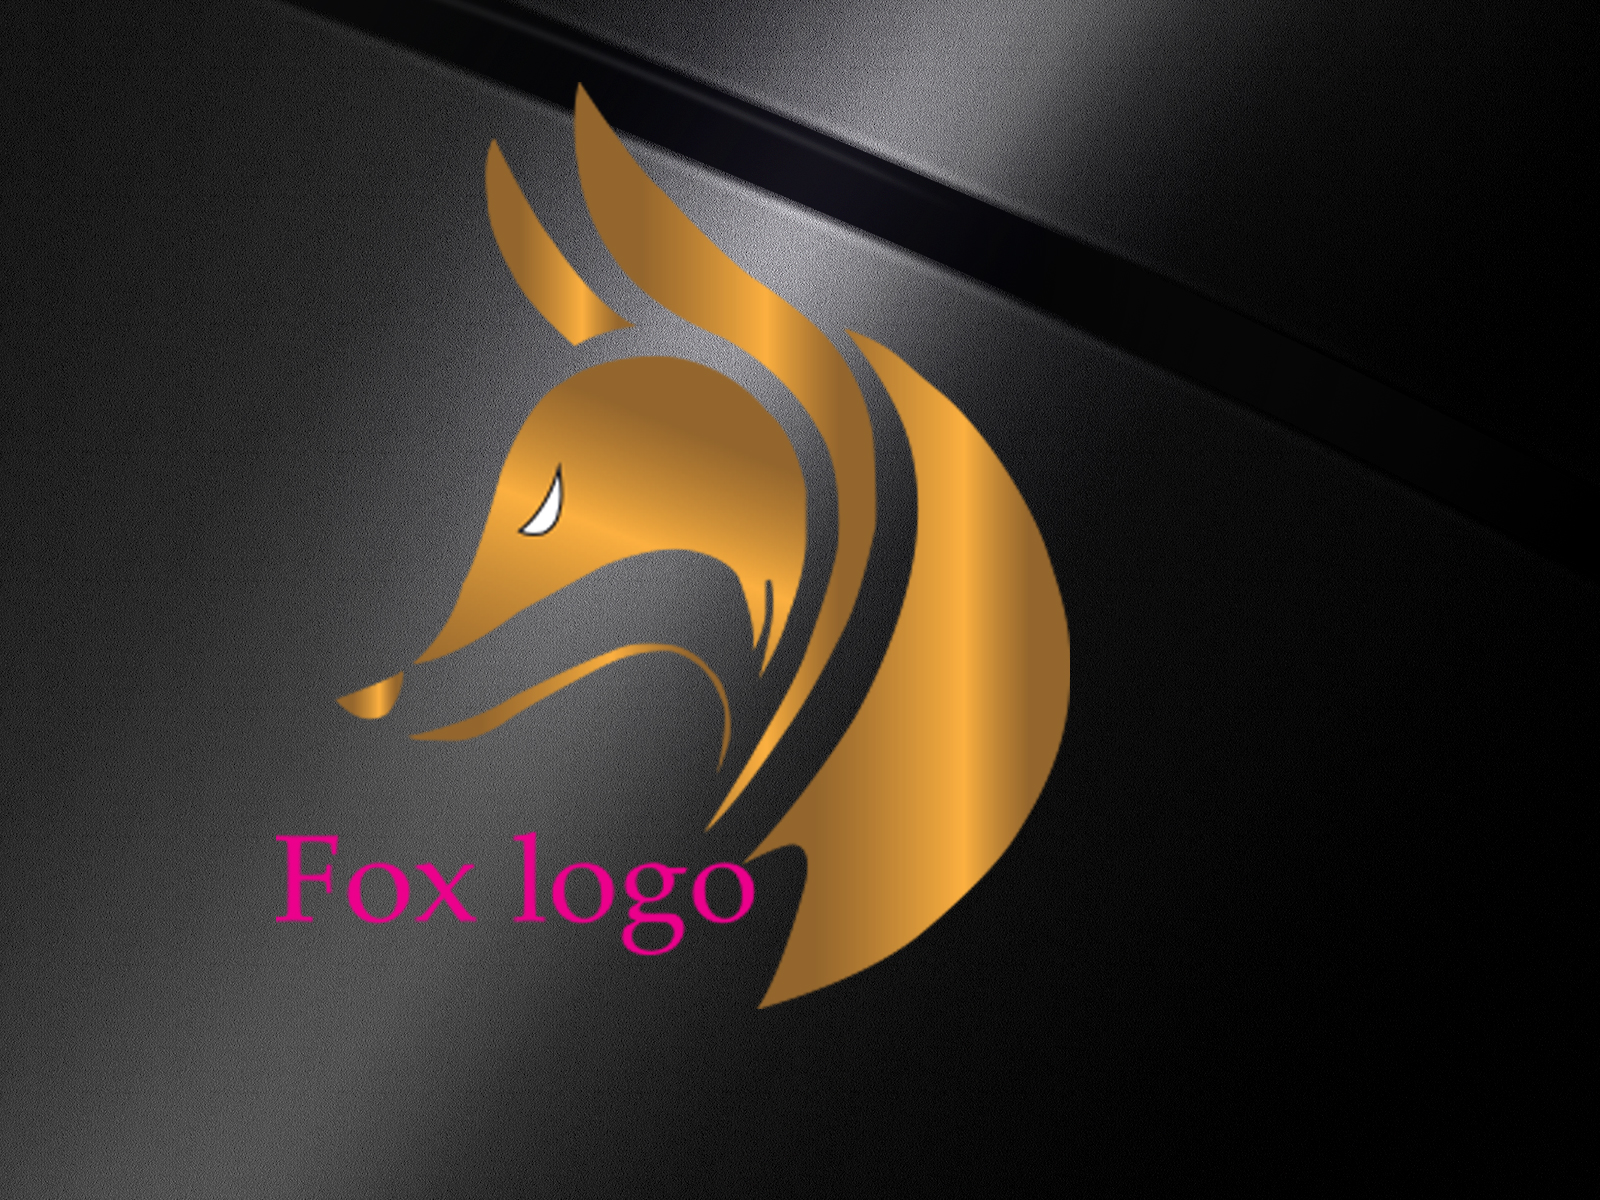 I will remake, edited your logo or change color